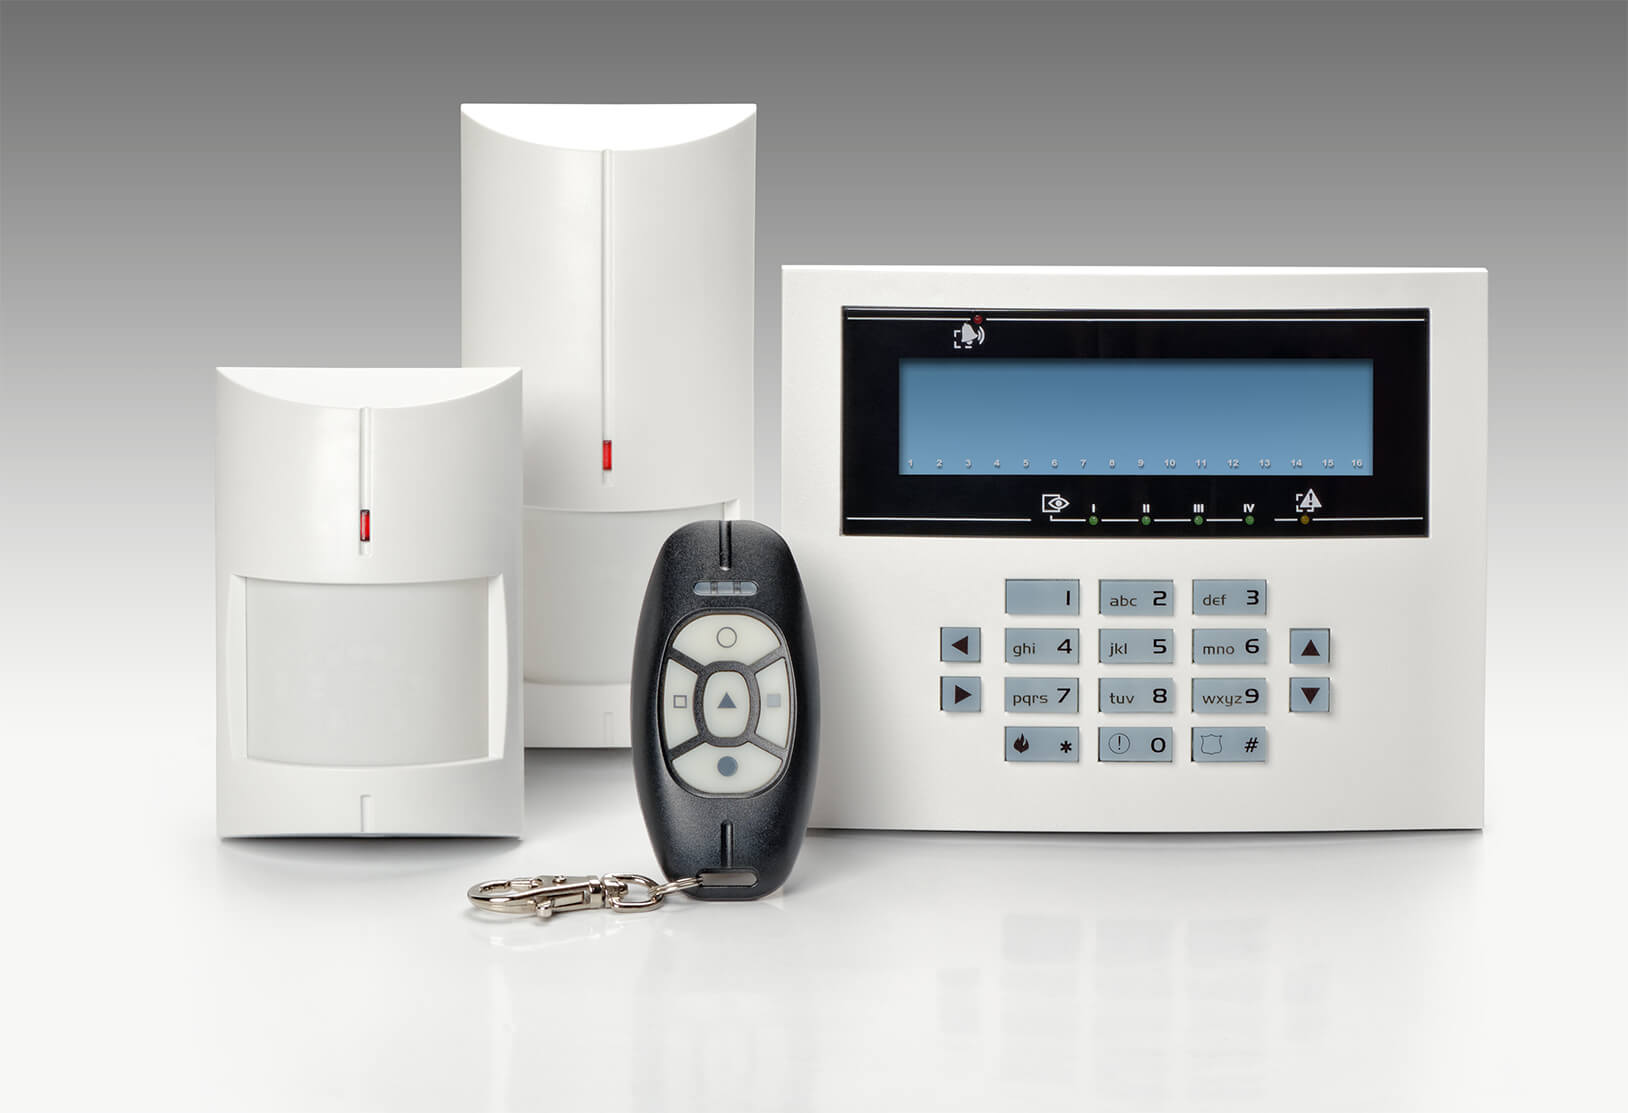 Business & Residential NACOSS Approved Burglar Alarms In Finsbury EC2 - Local Finsbury EC2 security company.Call 02078872244 - Dedicated to Safety & Security. Companies, shops and homes ..